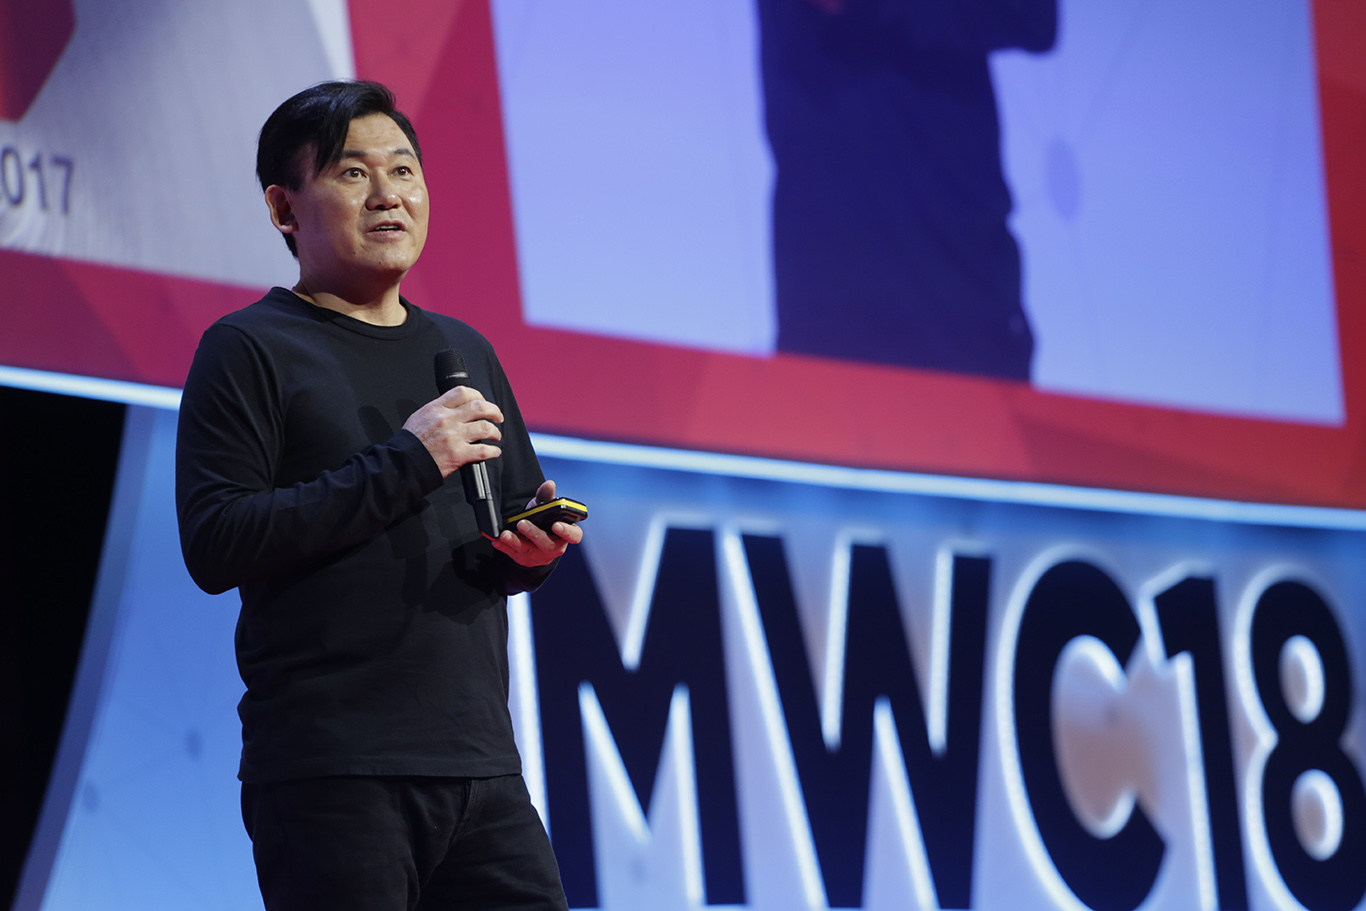 Mickey unveils vision for global ecosystem at Mobile World Congress